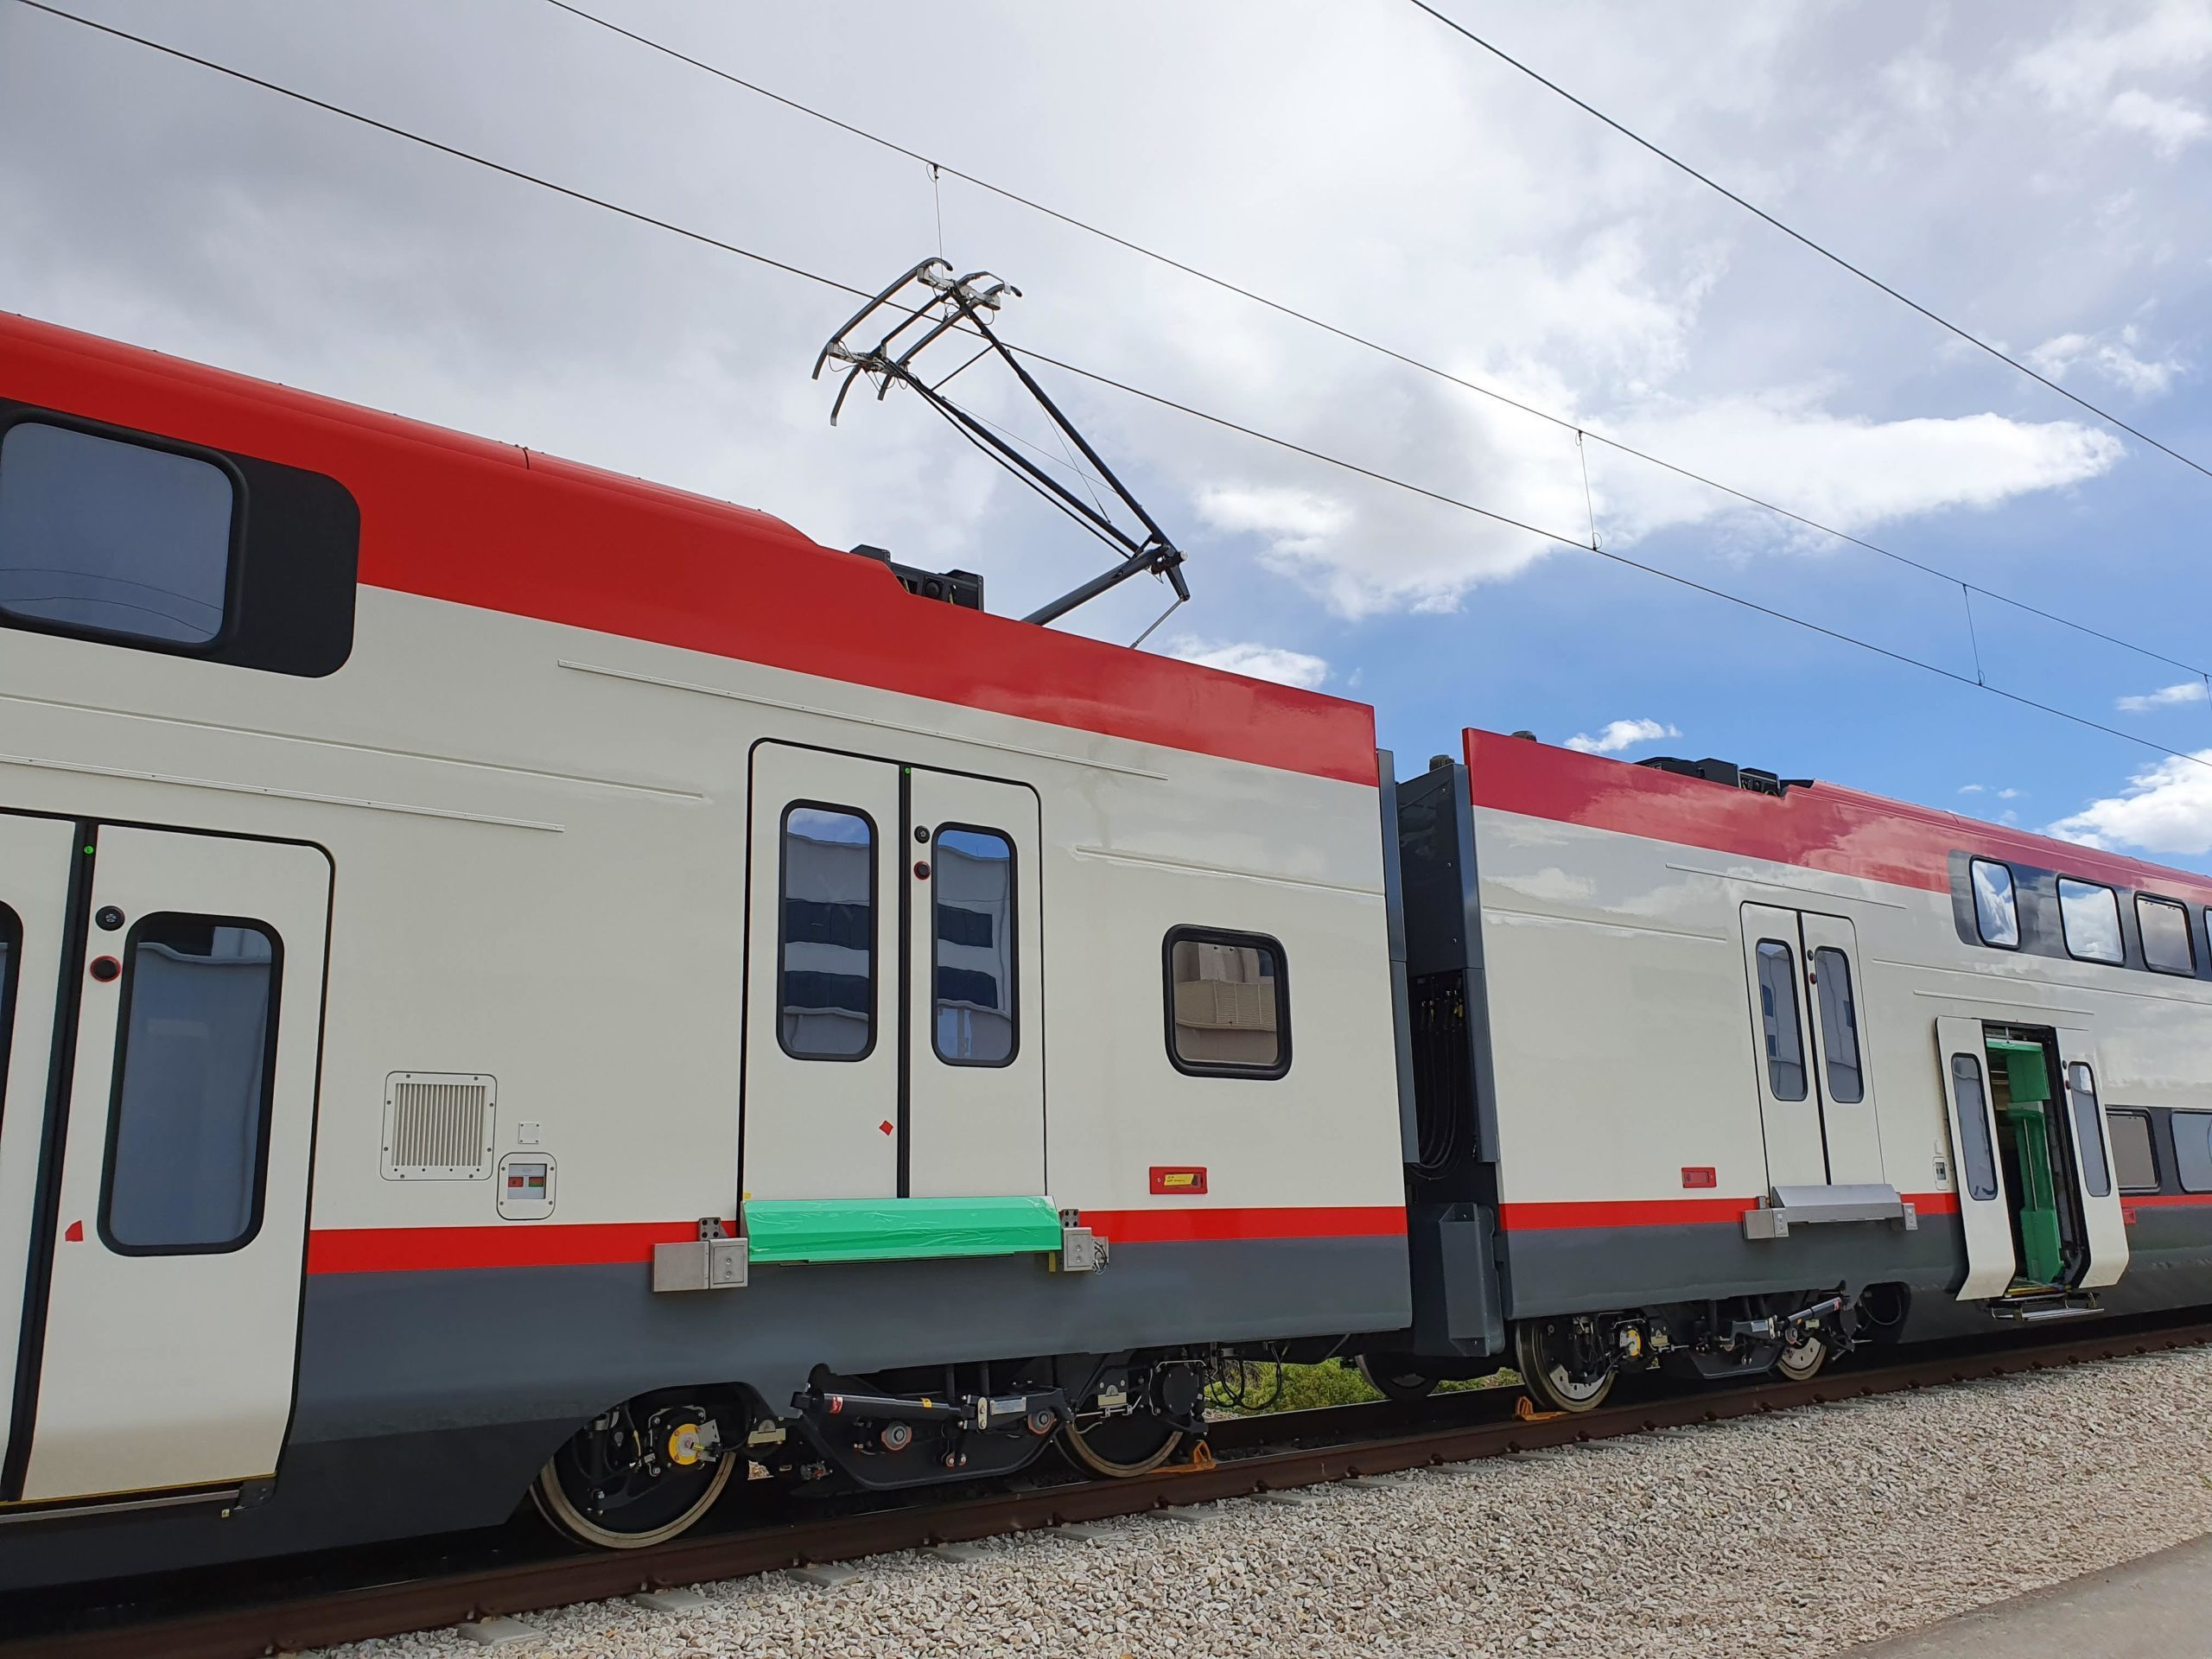 One of Caltrain's first electric train sets. Metrolink, LA's equivalent of Caltrain, uses diesels and has no plan to electrify. Photo: Caltrain